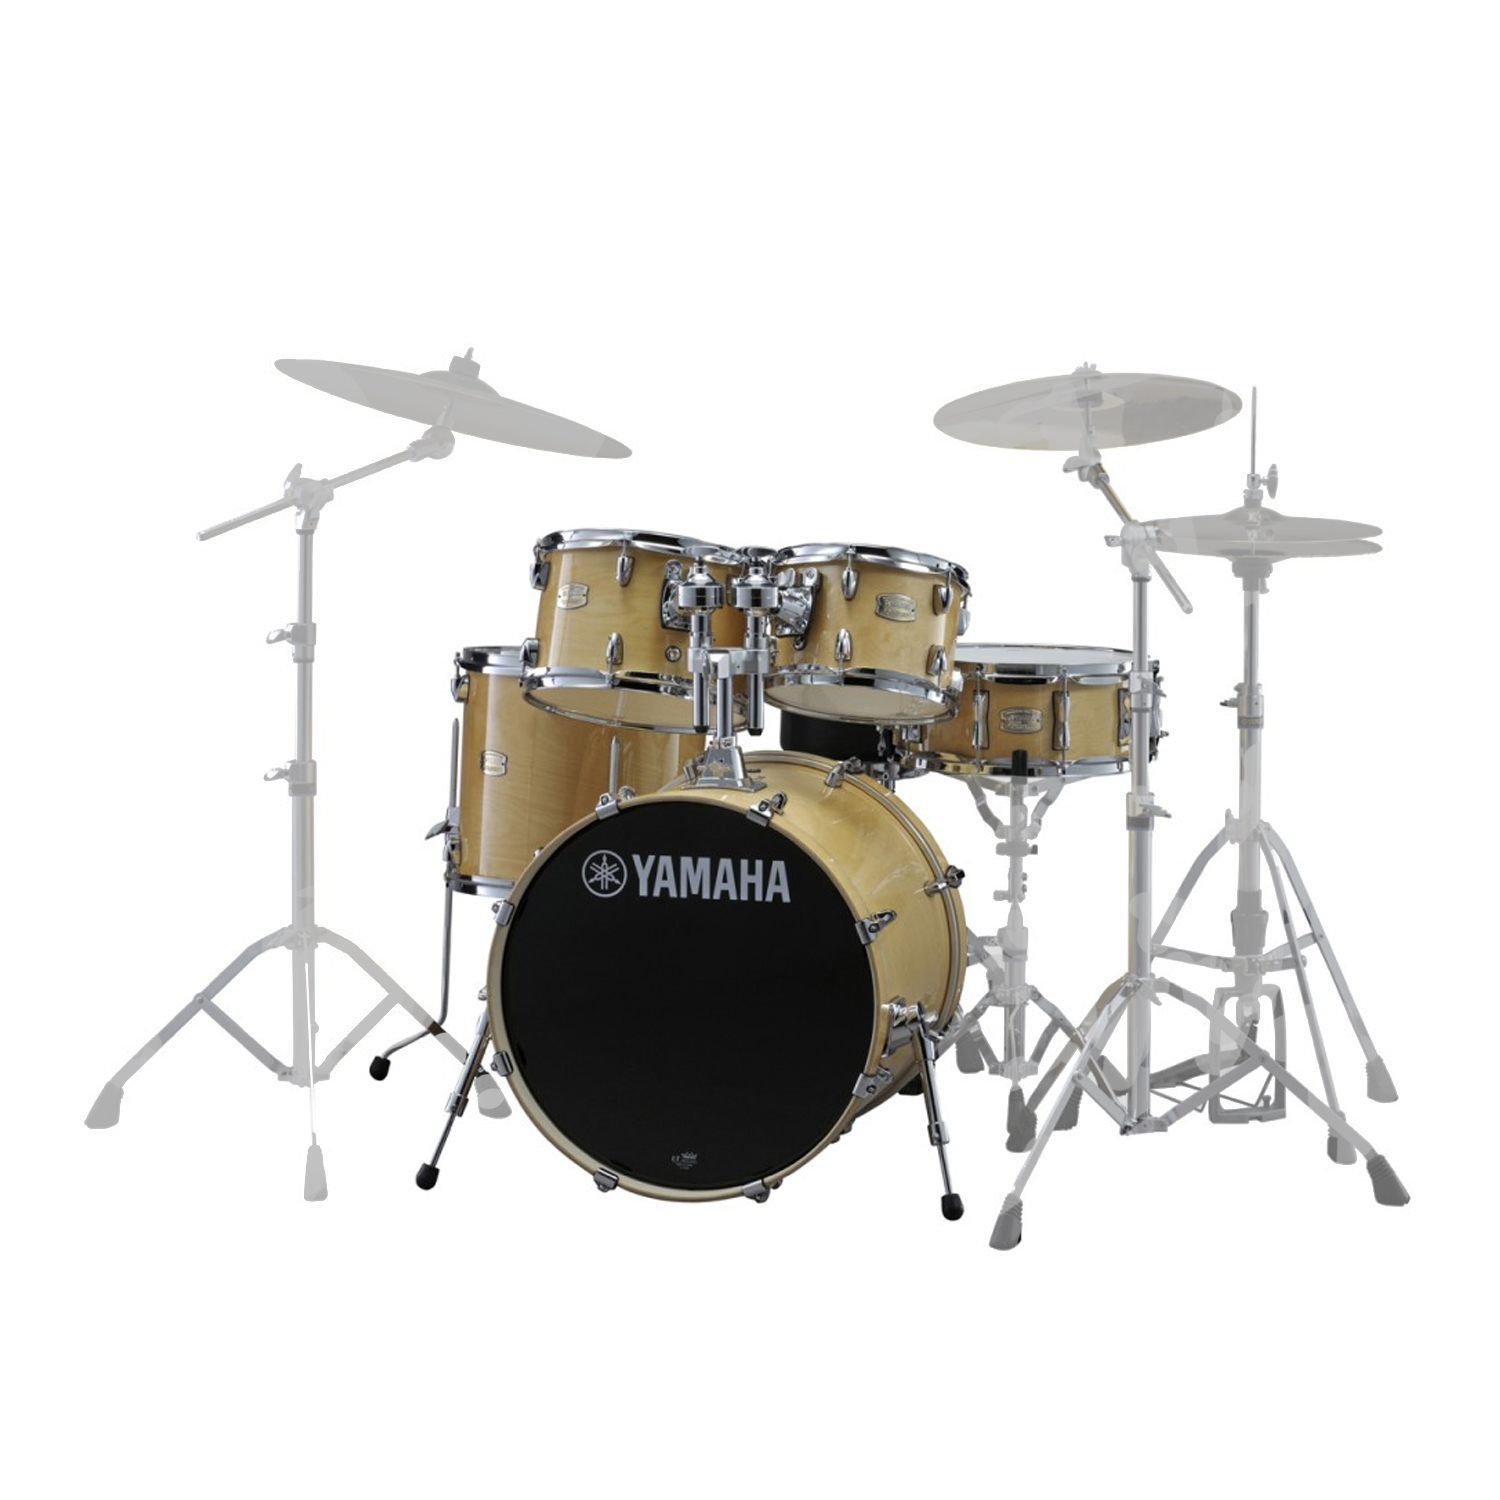 musicworks drums percussion jazz drum kits jazz kits yamaha stage fusino jazz kit. Black Bedroom Furniture Sets. Home Design Ideas